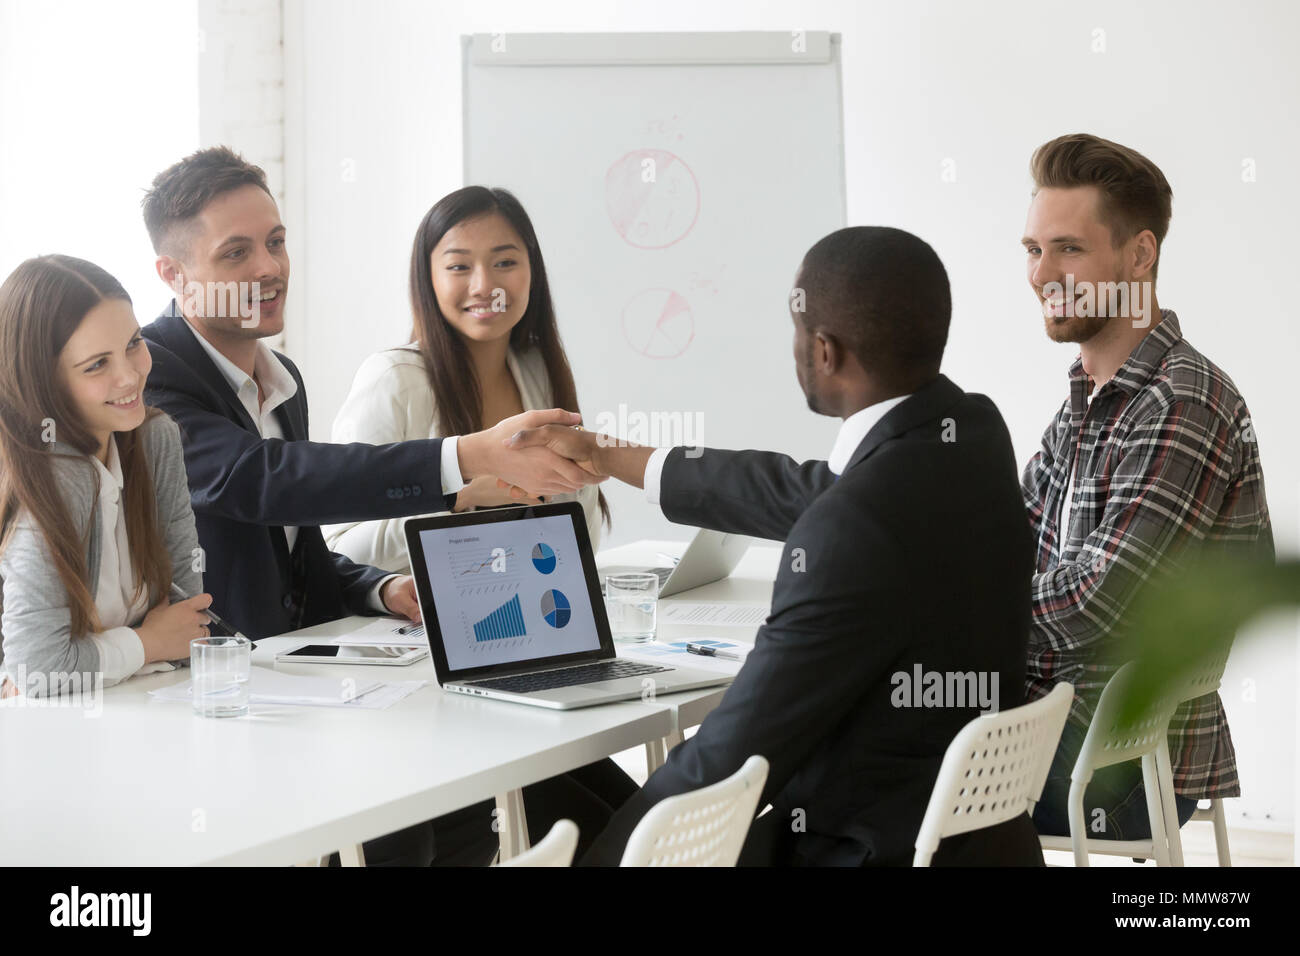 Satisfied multiracial businessmen handshaking after successful g - Stock Image